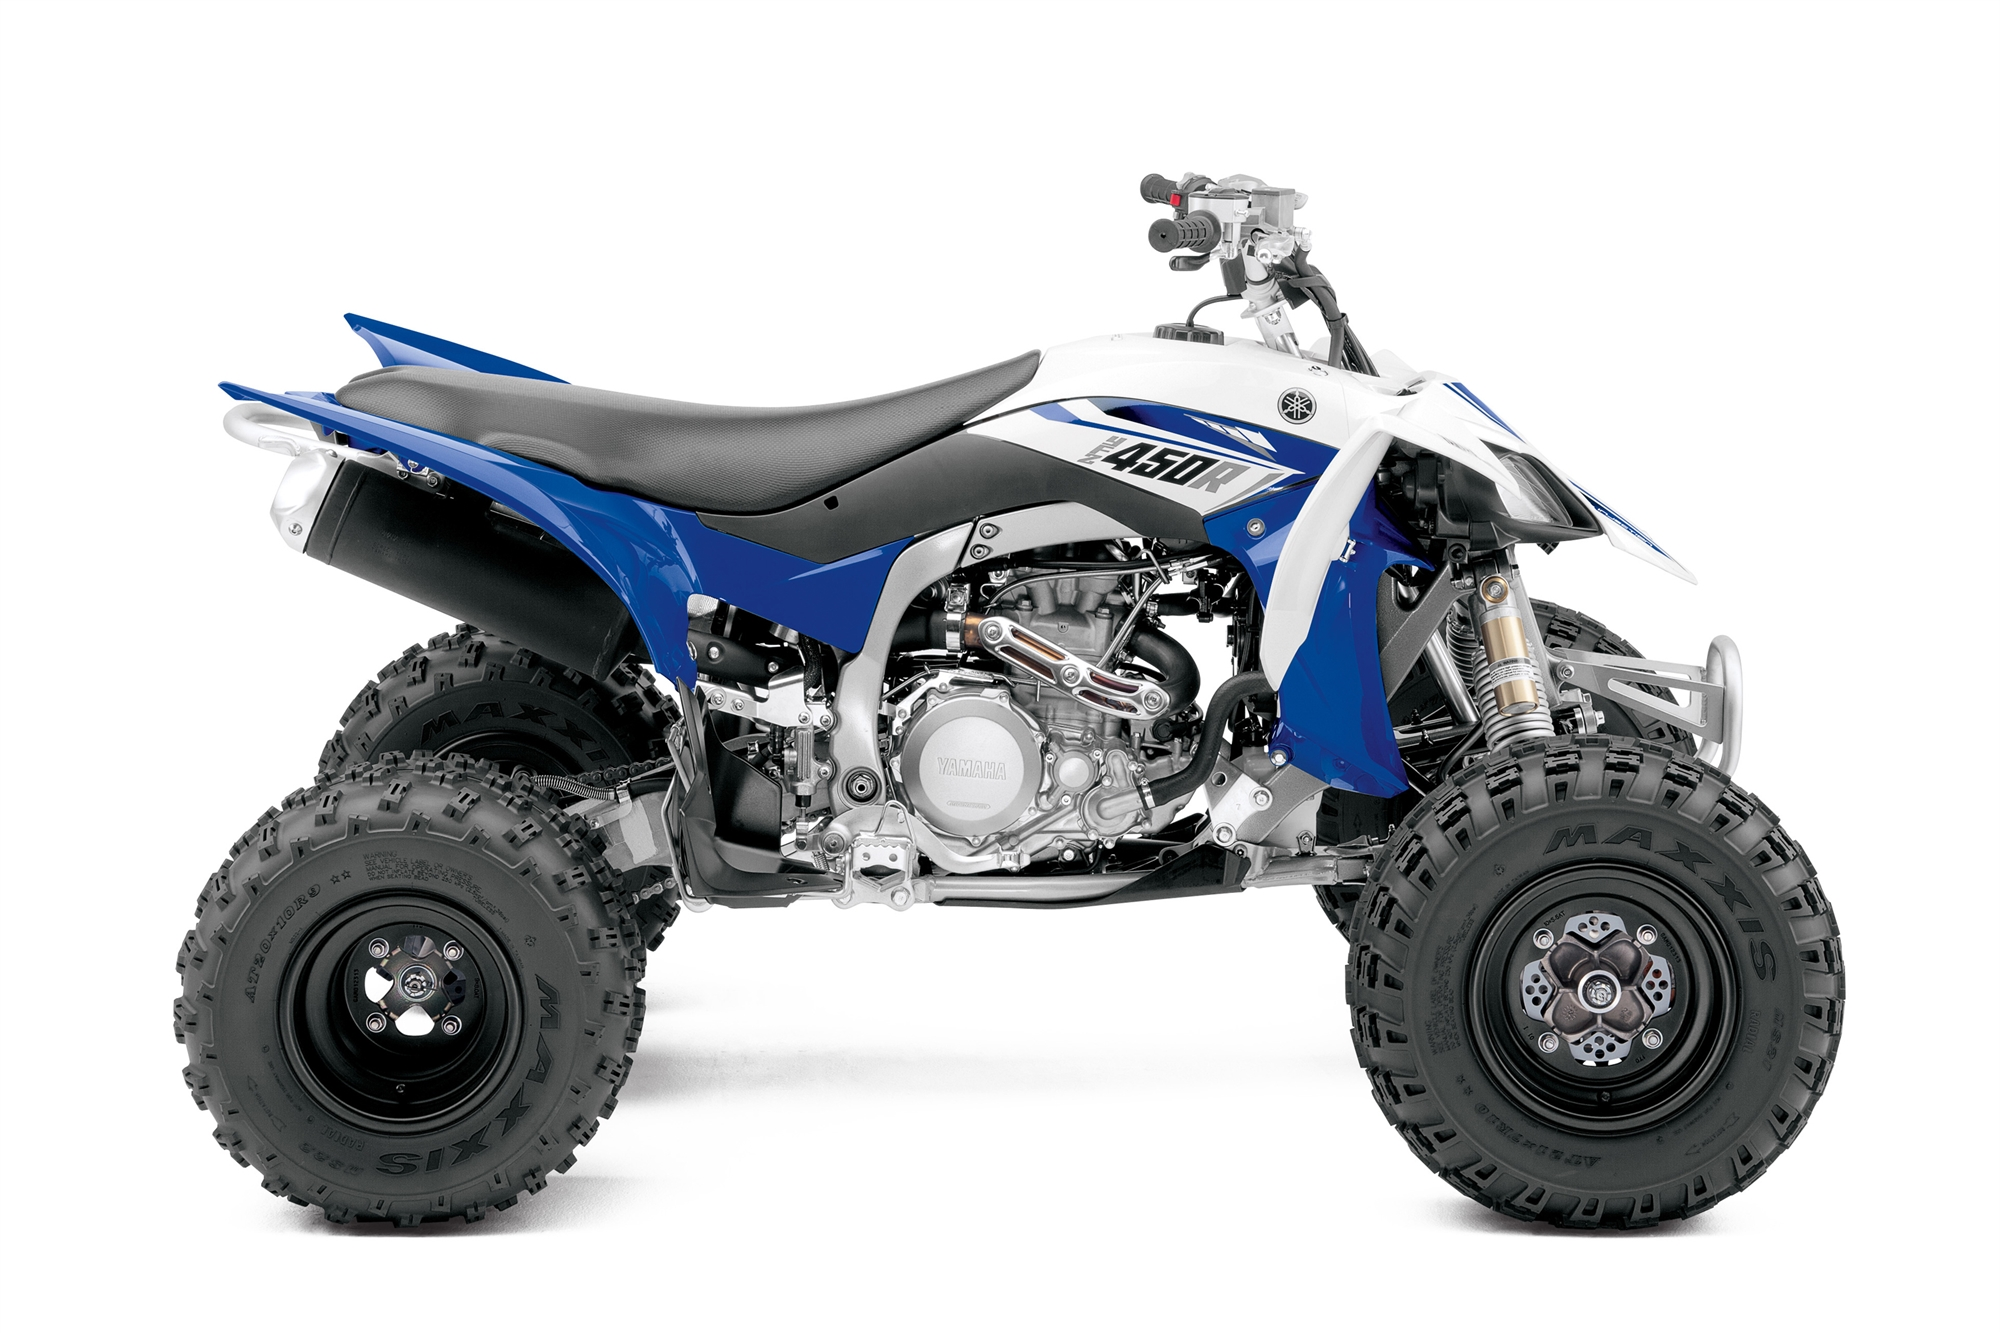 2014 yamaha yfz450r brings slipper clutch to the atv world for What year is my yamaha atv